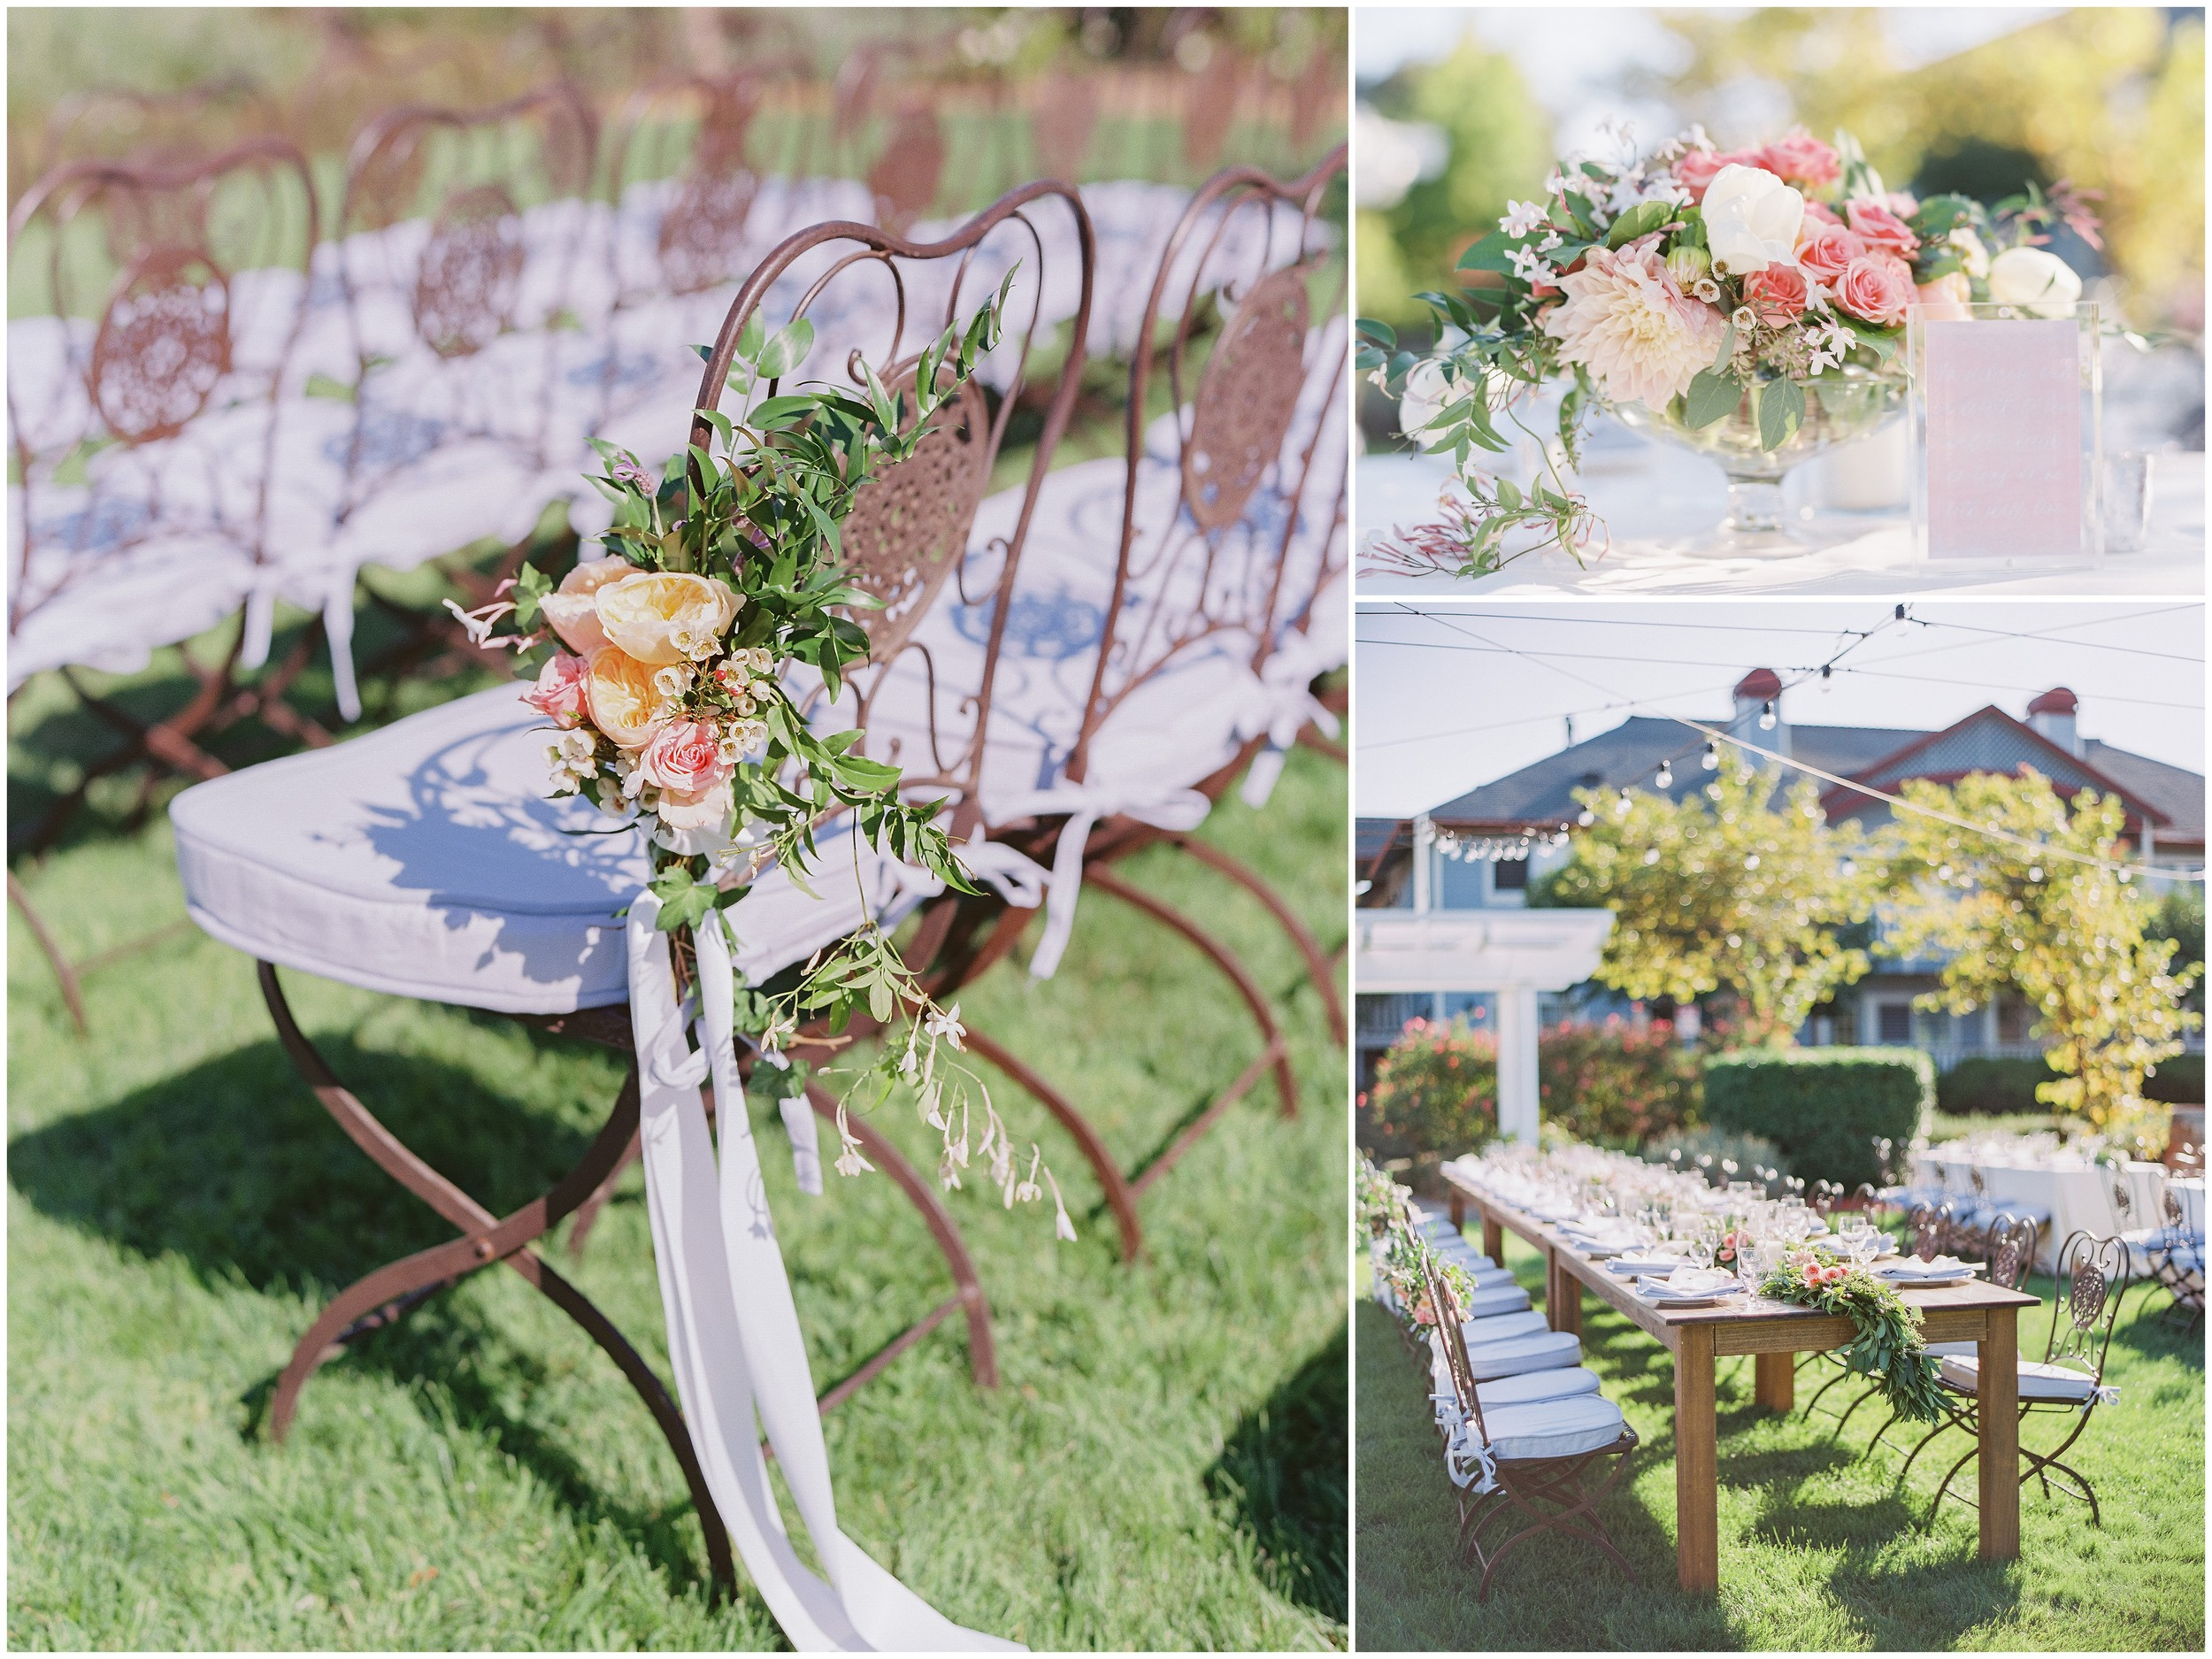 L'Relyea Events - Event Planning & Design - Geyserville Inn, CA   Wedding venues in Wine Country